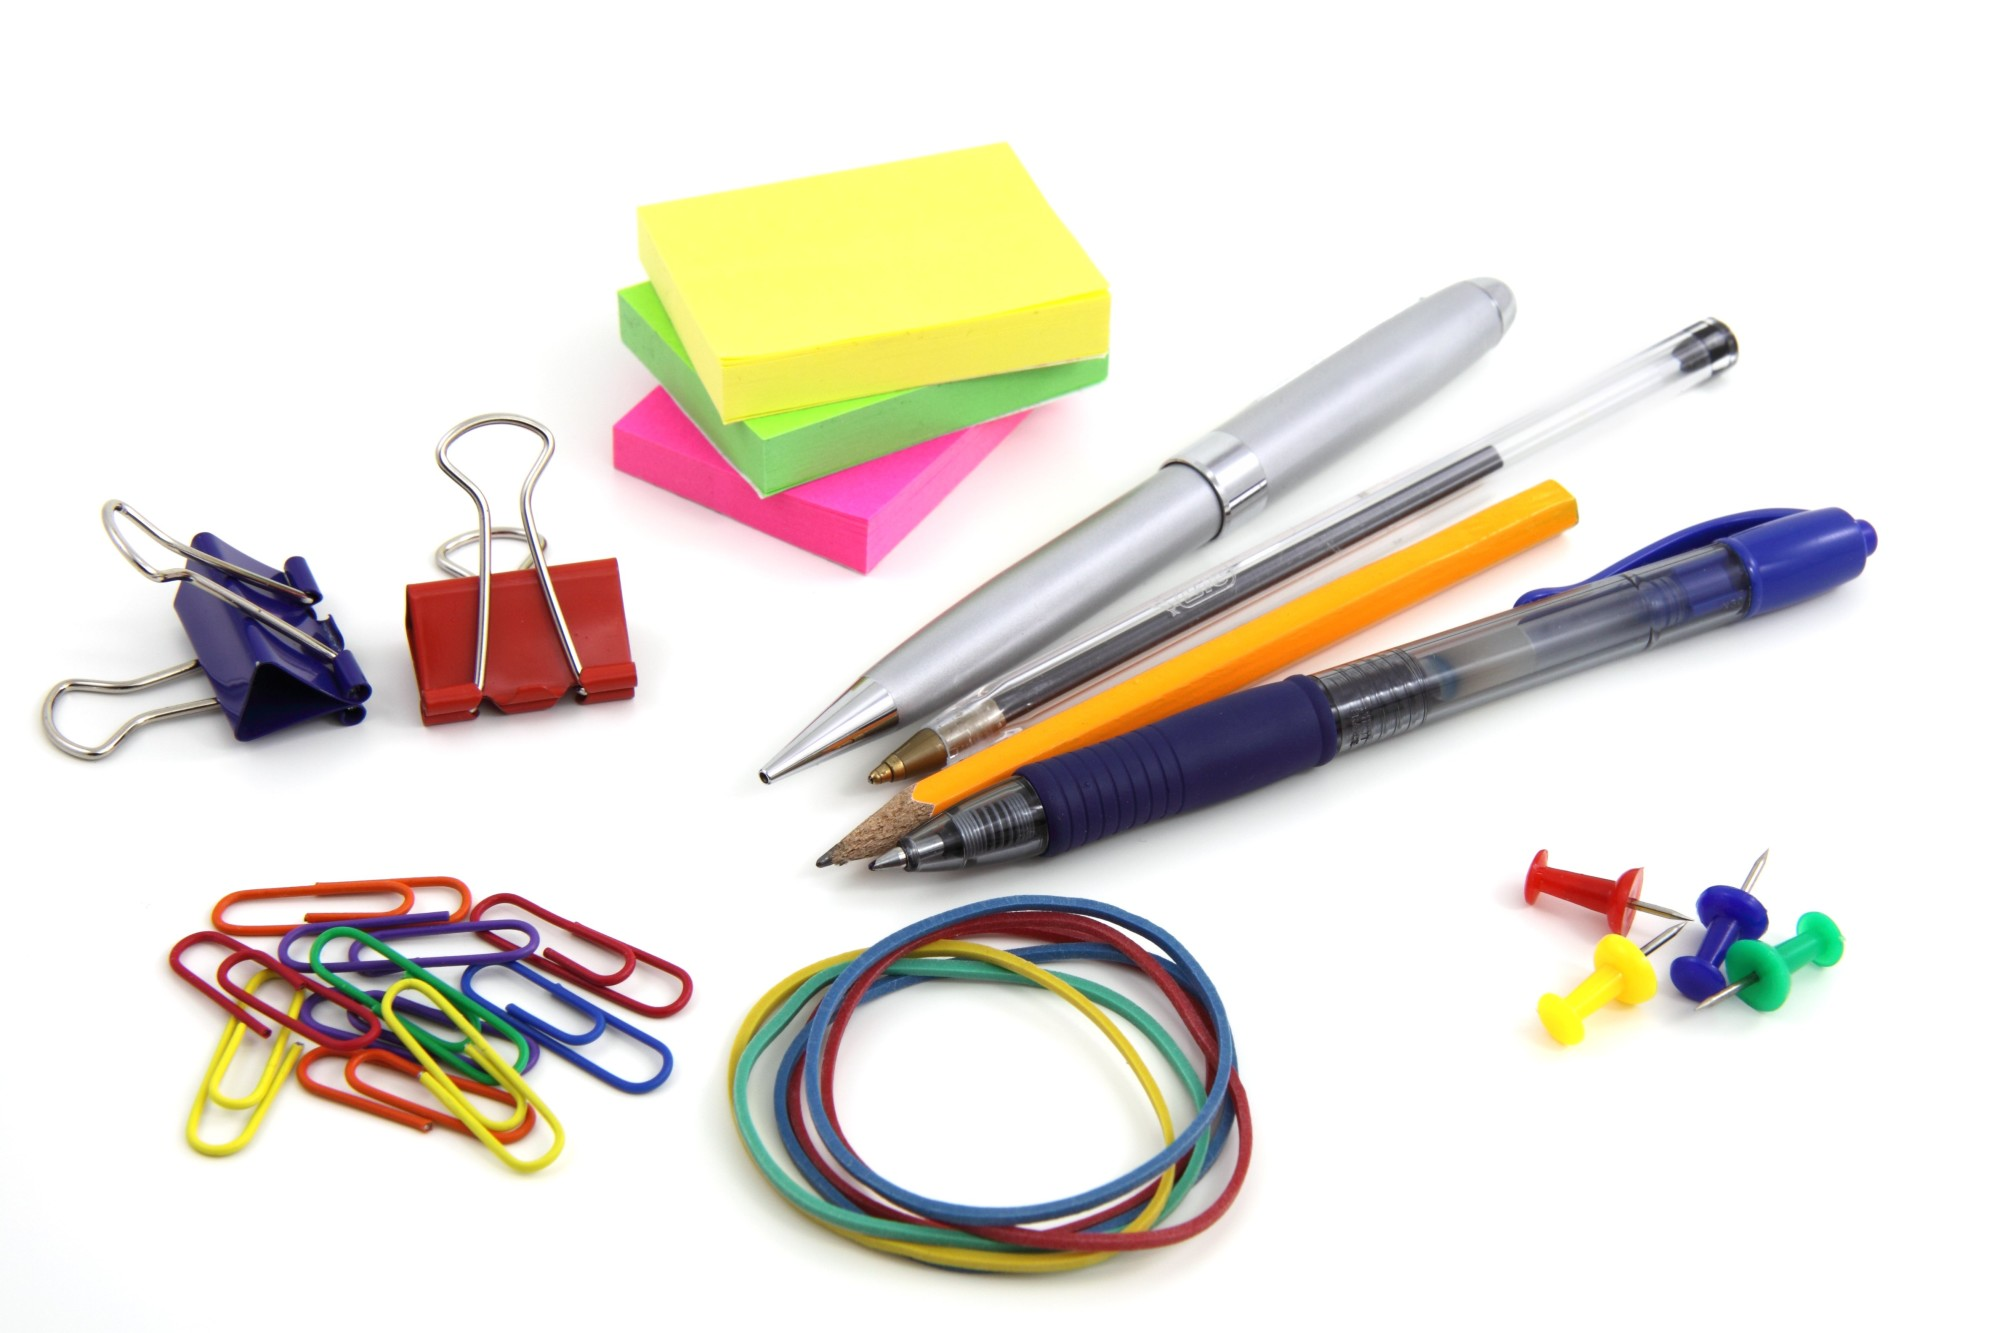 A List of Some Must Have Office Supplies for Any Work Space